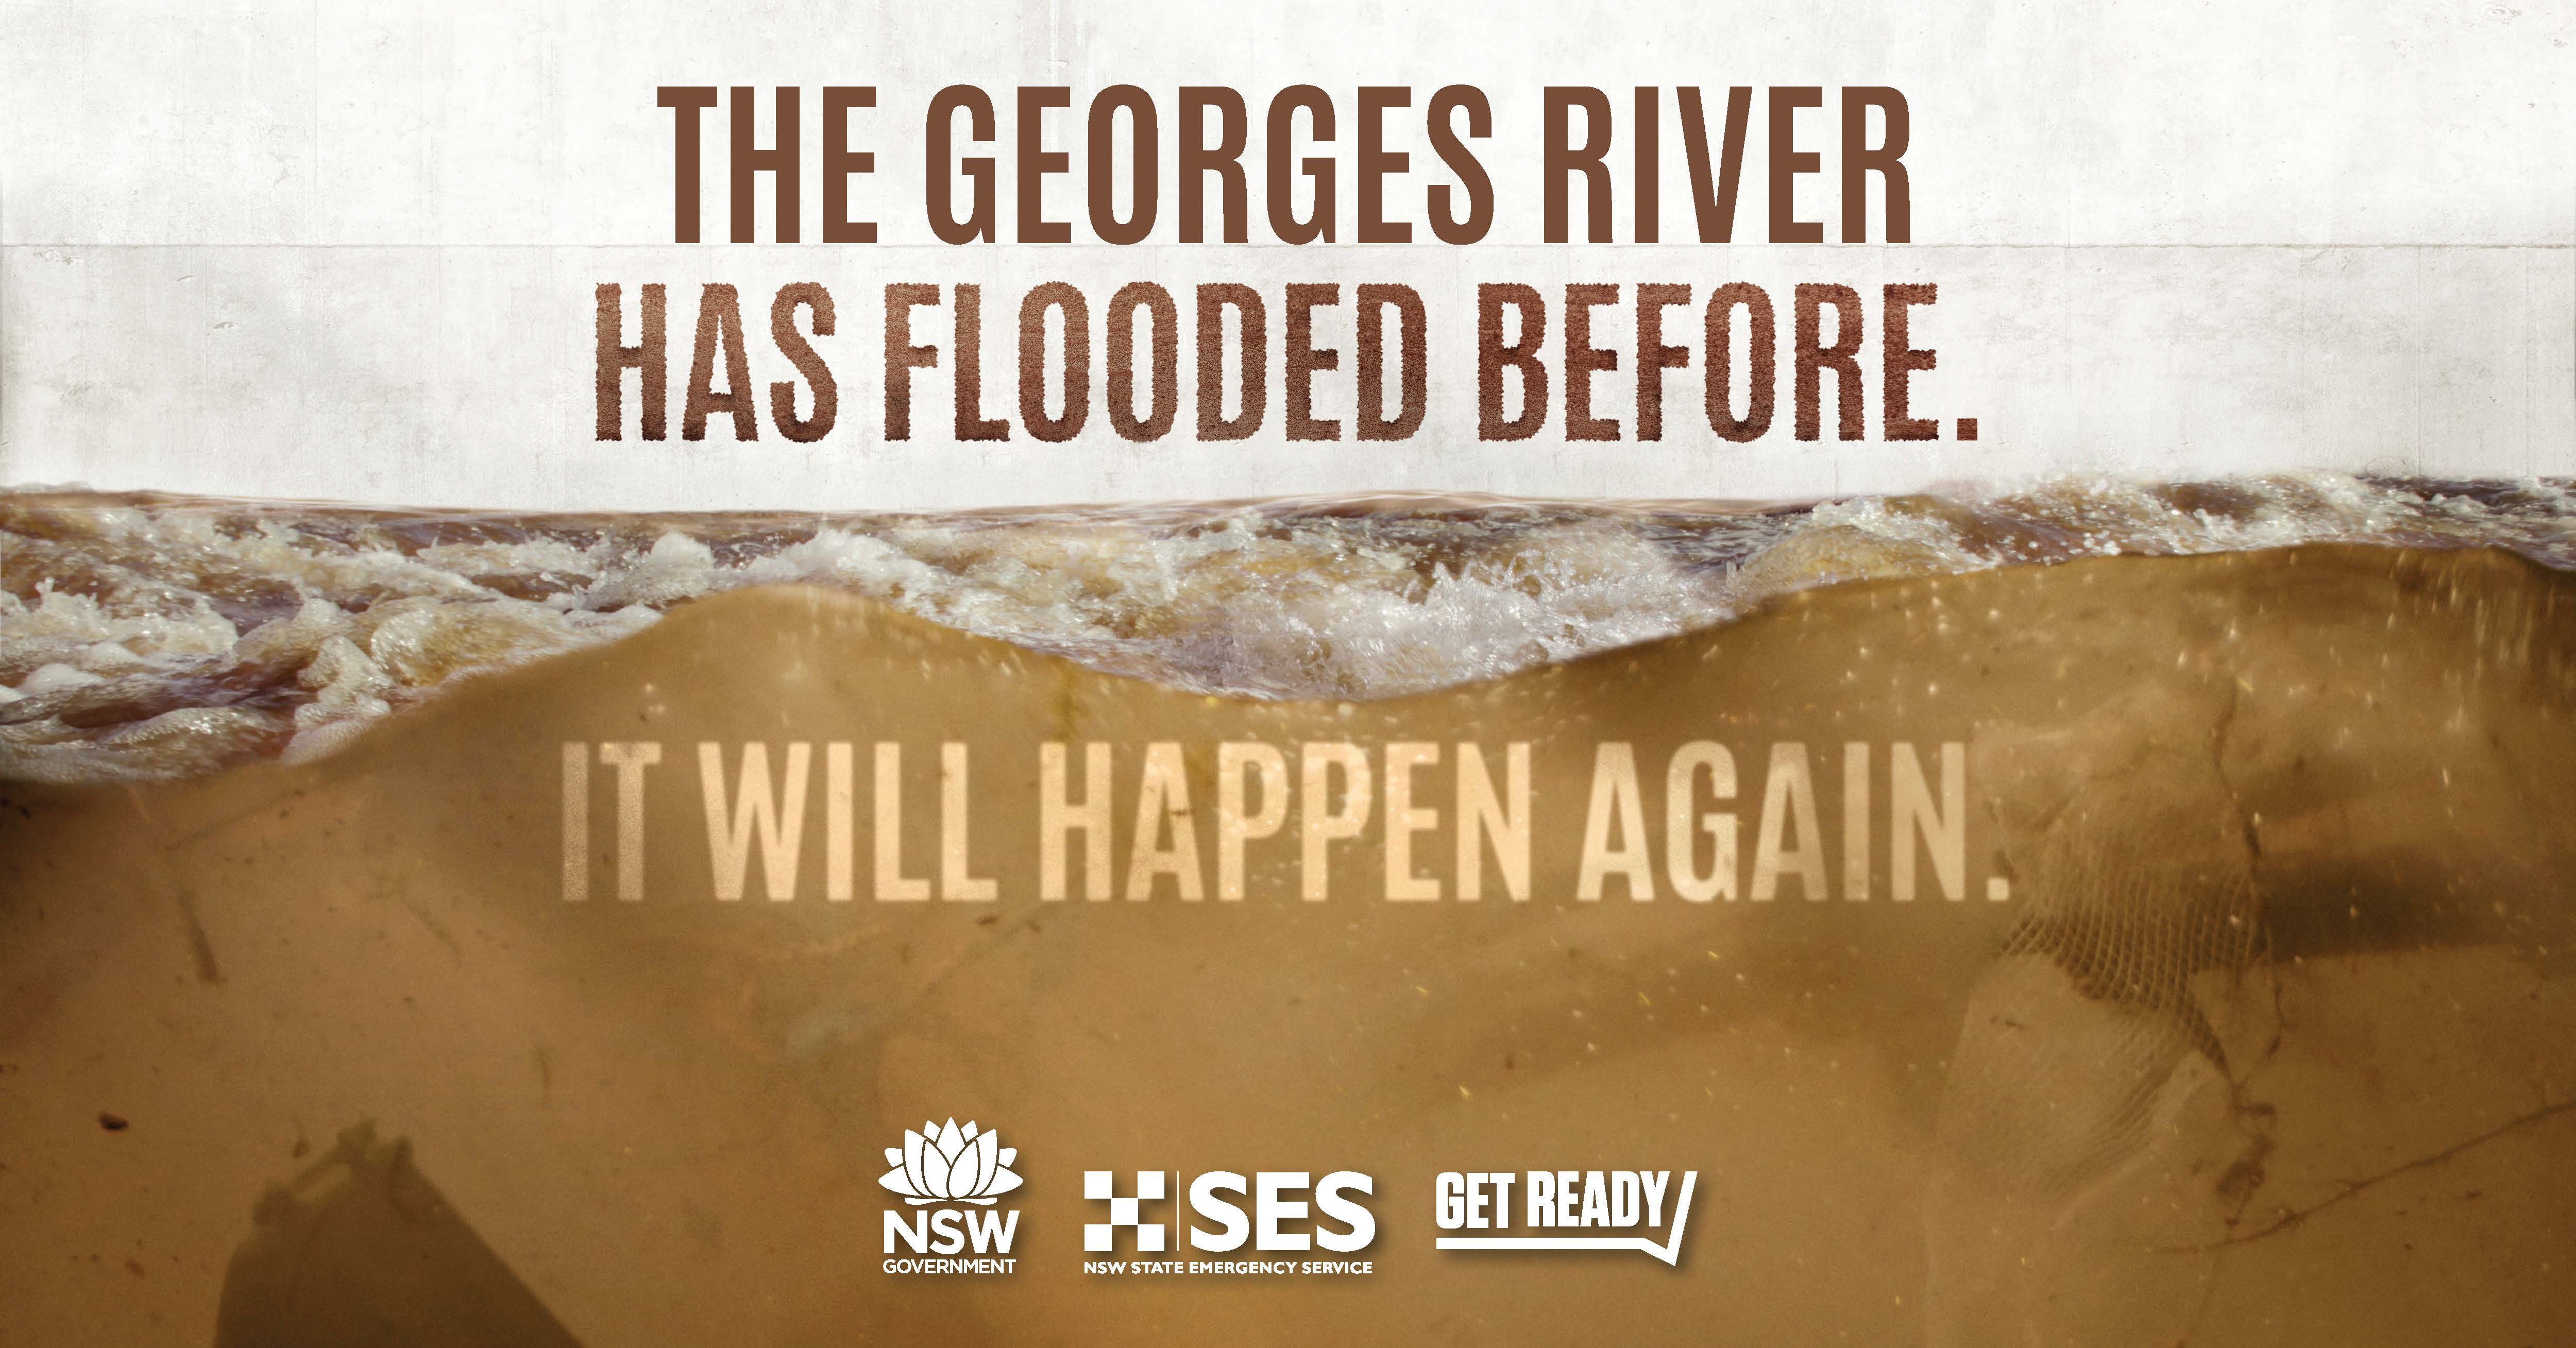 The Georges River has flooded before, it will flood again